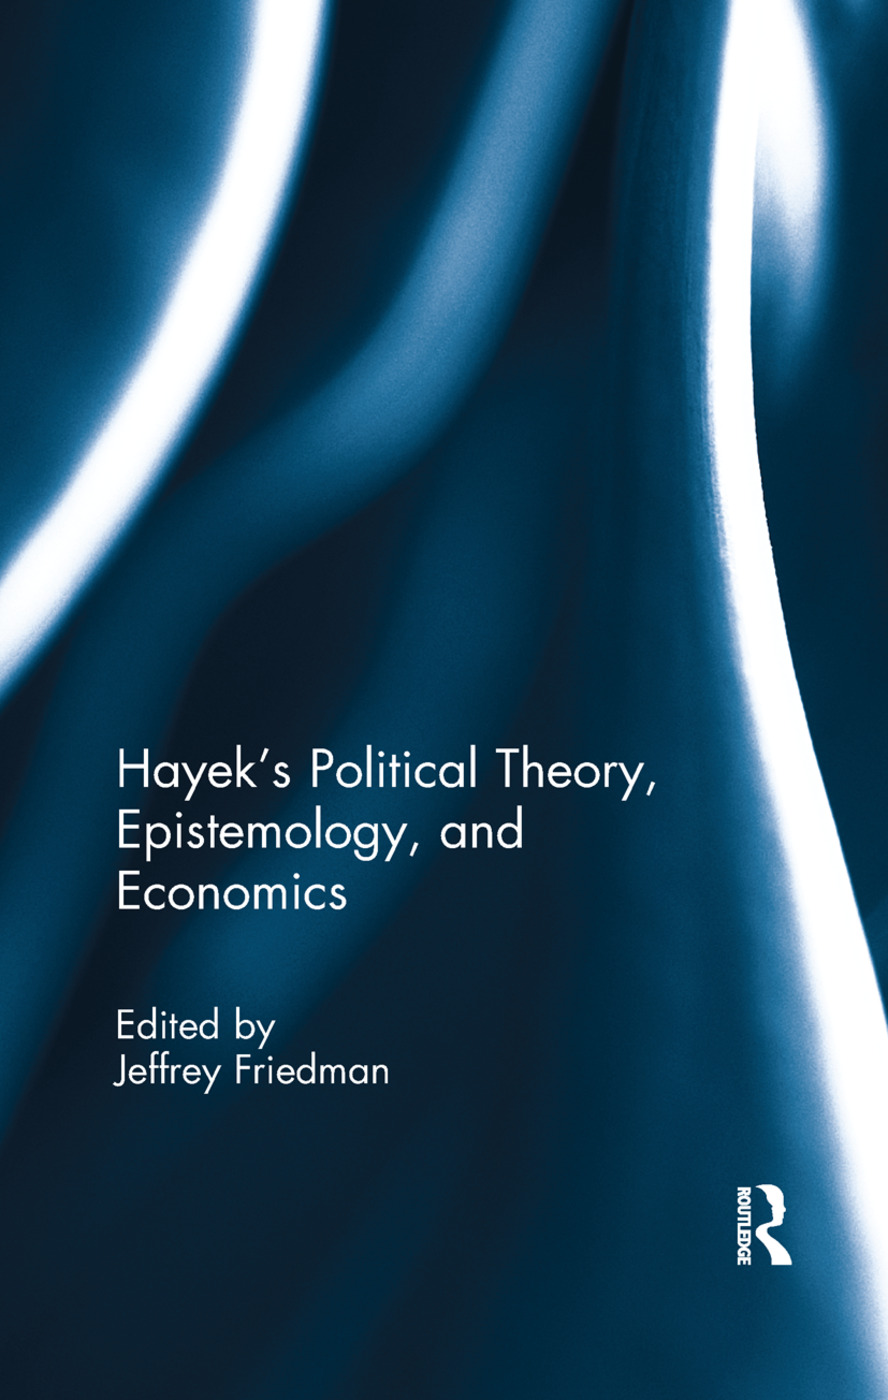 Hayek's Political Theory, Epistemology, and Economics